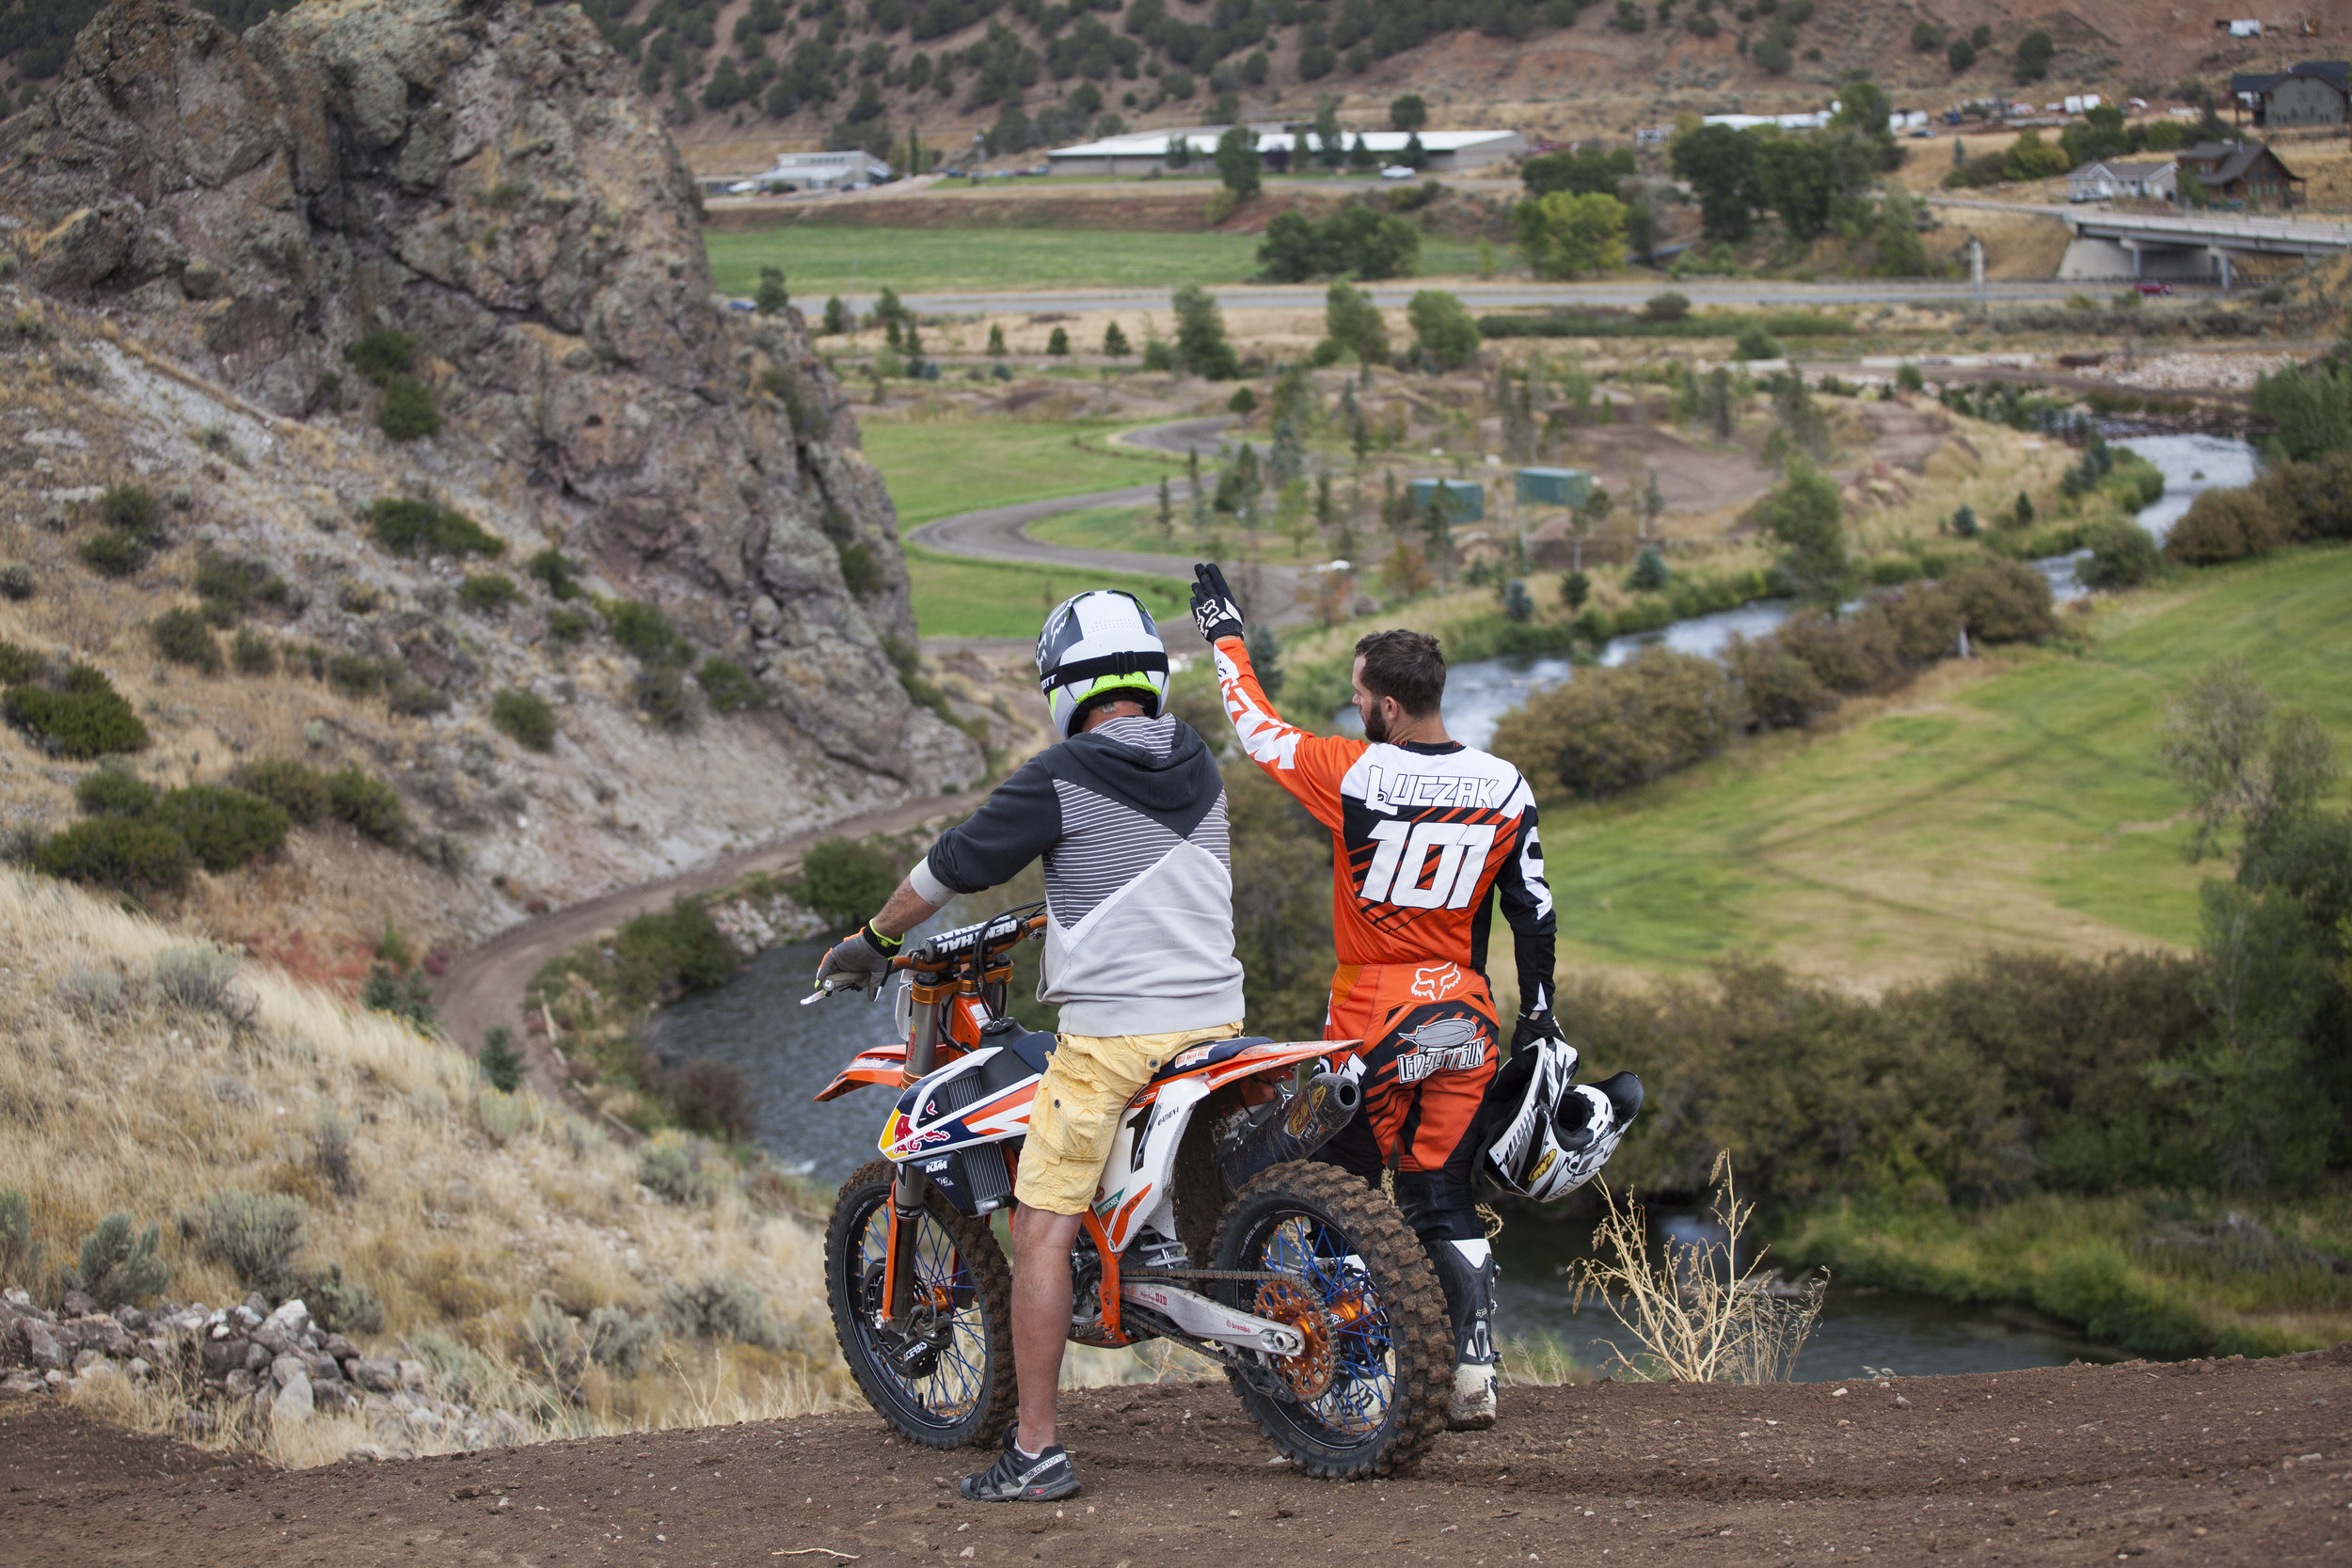 For Spencer and his family riding is very much a family affair. They have spent years turning their property into a Moto paradise. On any given ride day you can catch Spencer and his dad doing what they love…riding and perfecting their tracks.